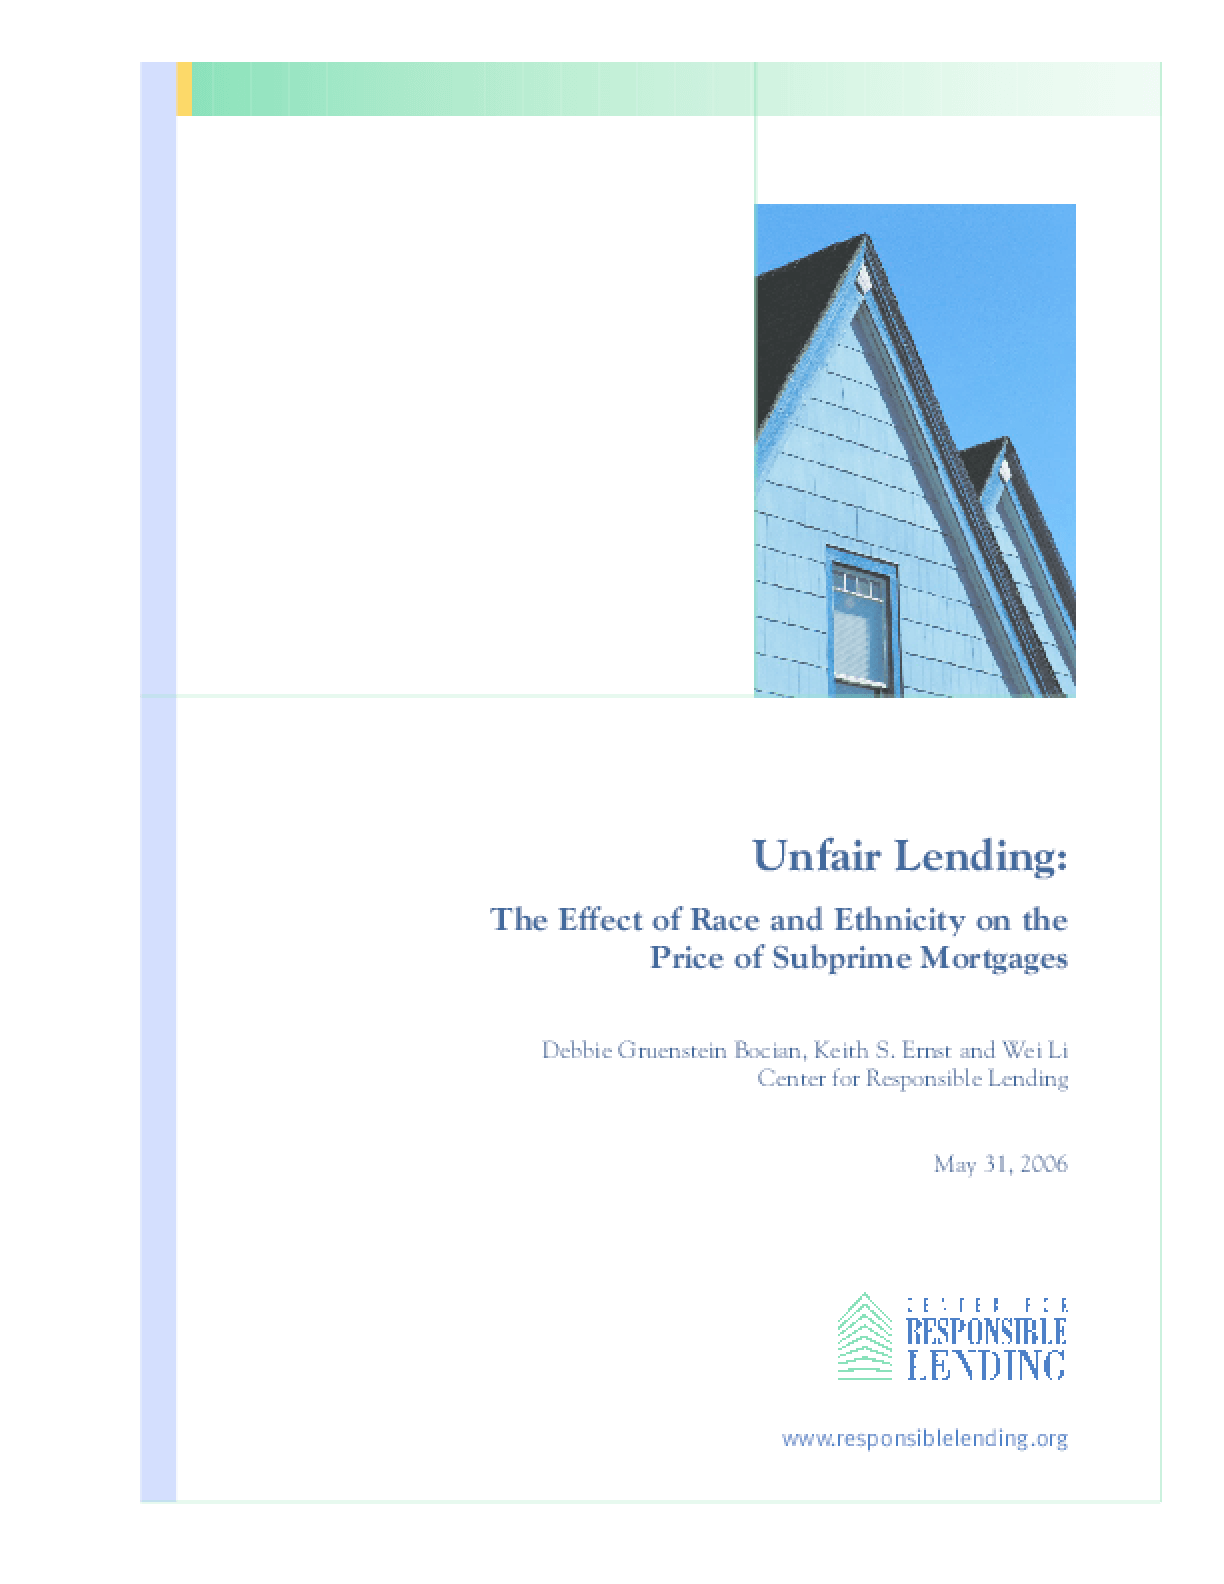 Unfair Lending: The Effect of Race and Ethnicity on the Price of Subprime Mortgages